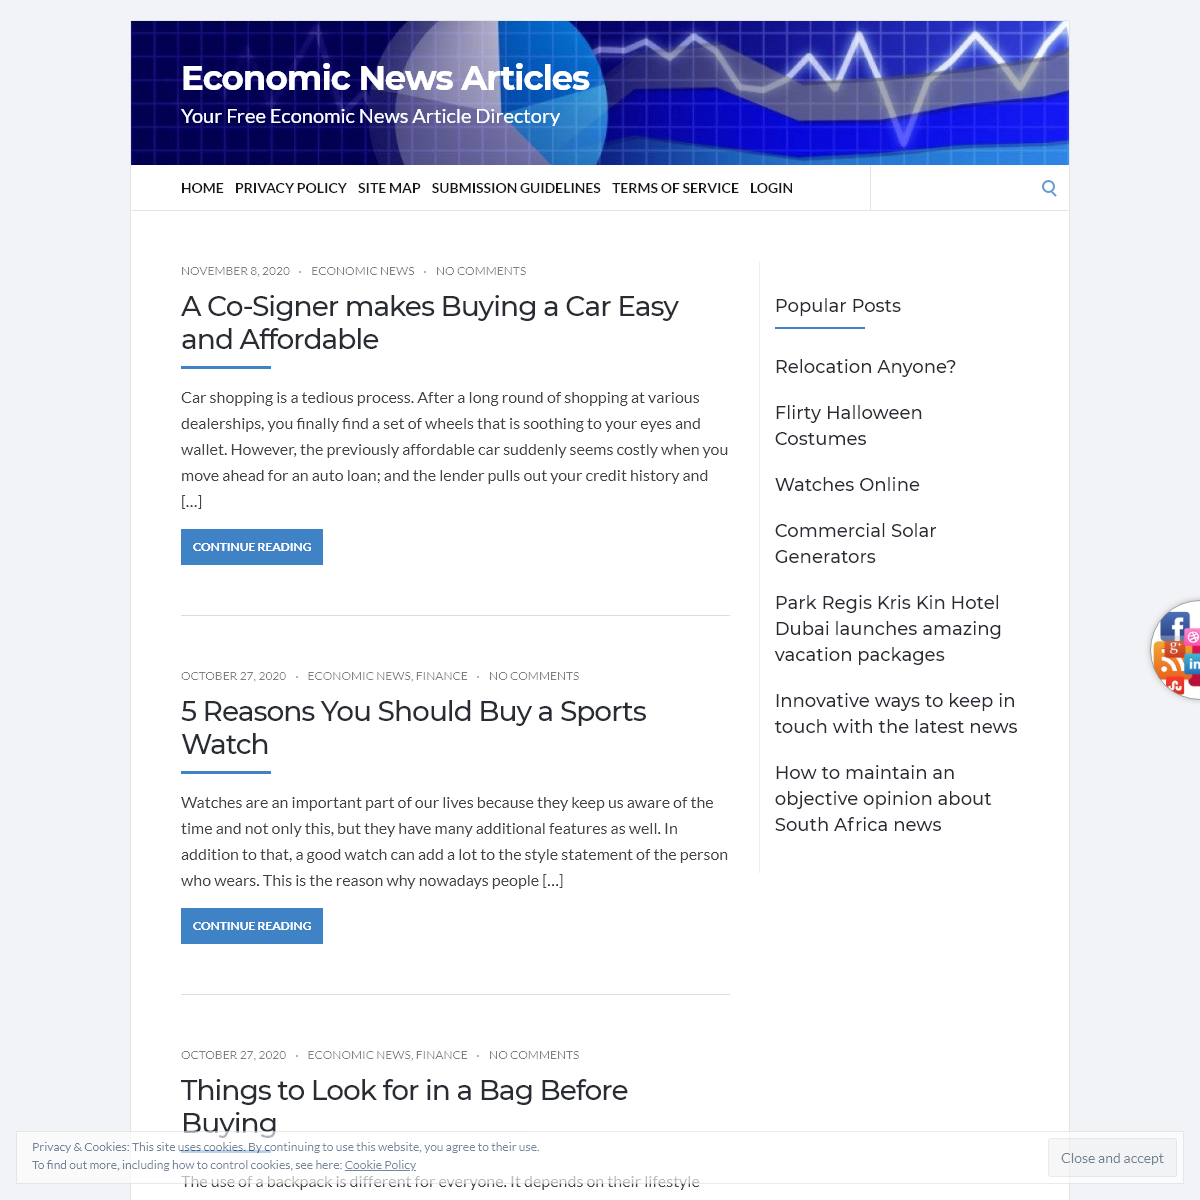 Economic News Articles – Your Free Economic News Article Directory